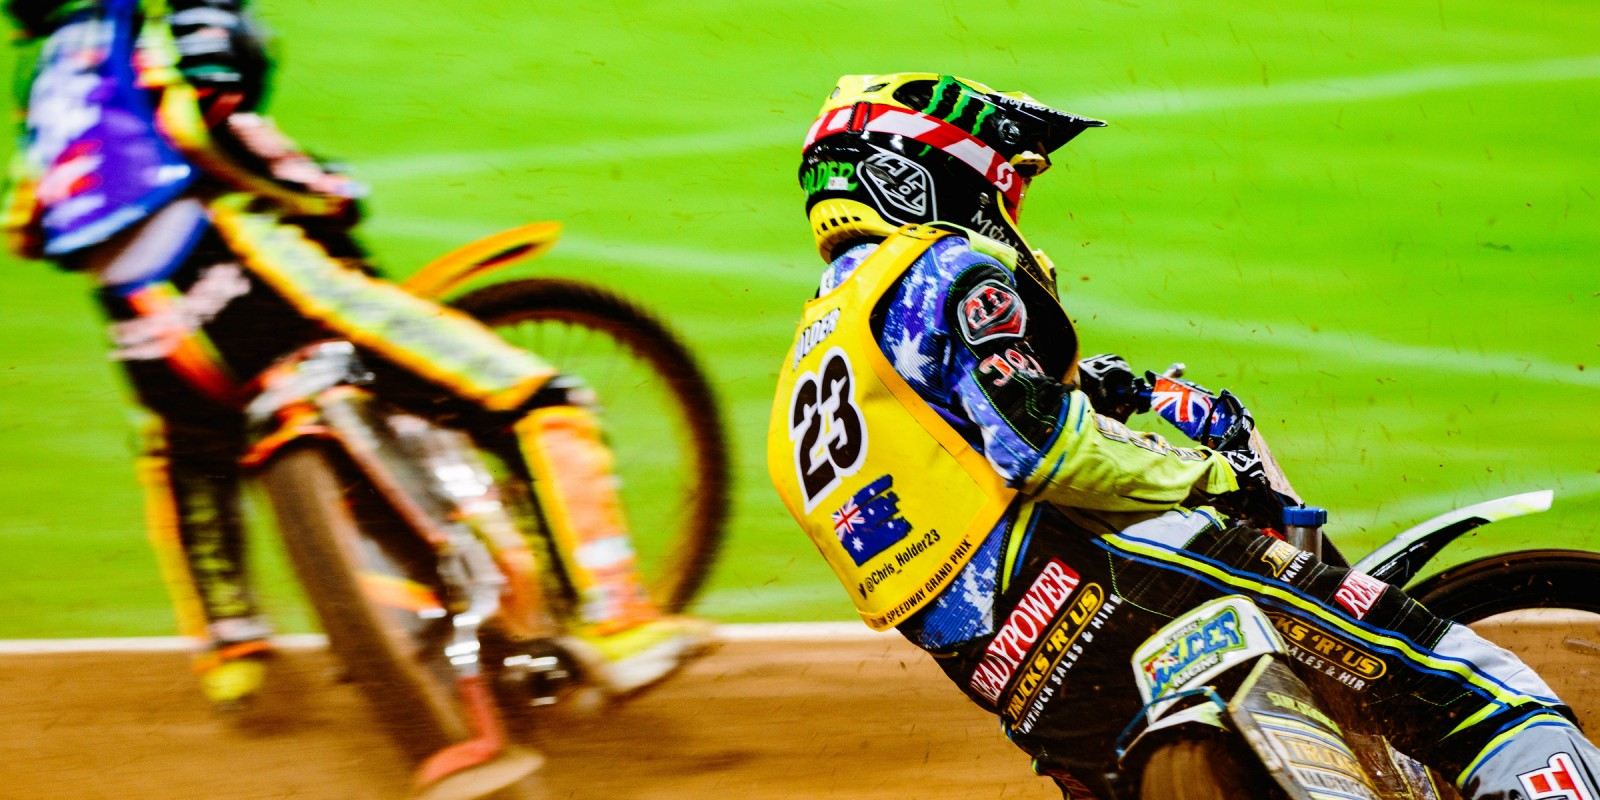 Images from the 2016 Stockholm Speedway GP